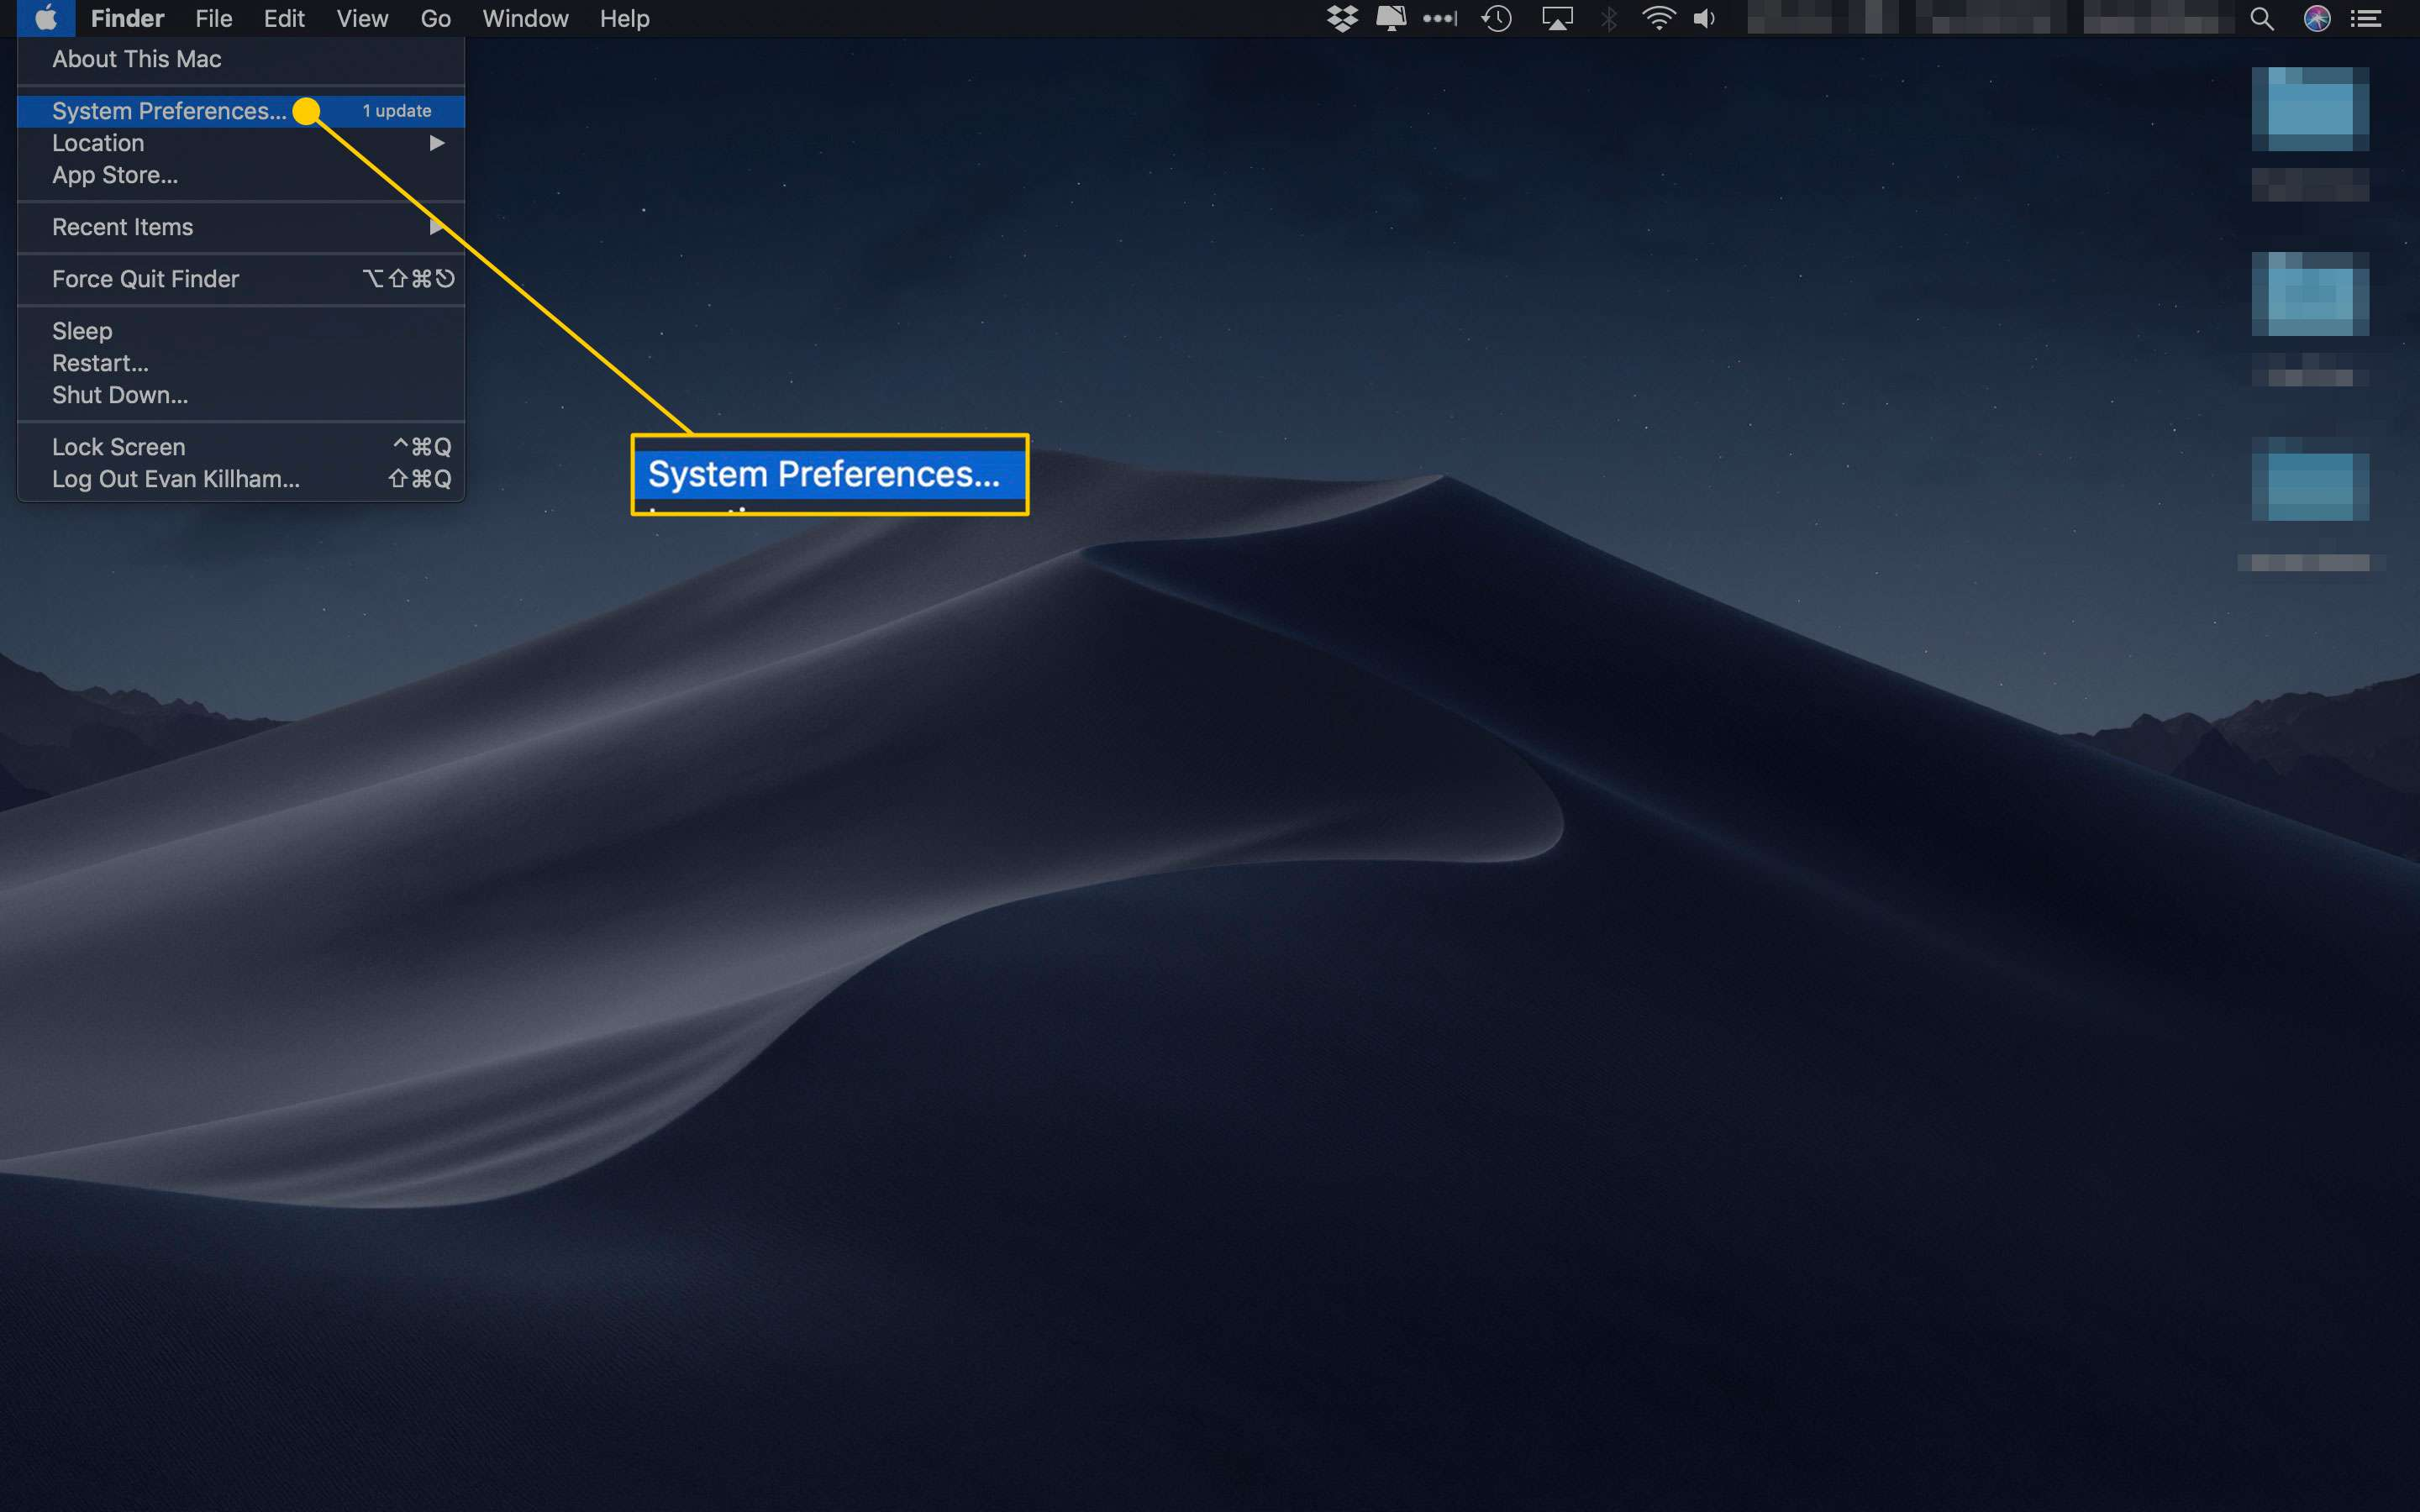 Mac desktop with the System Preferences command highlighted